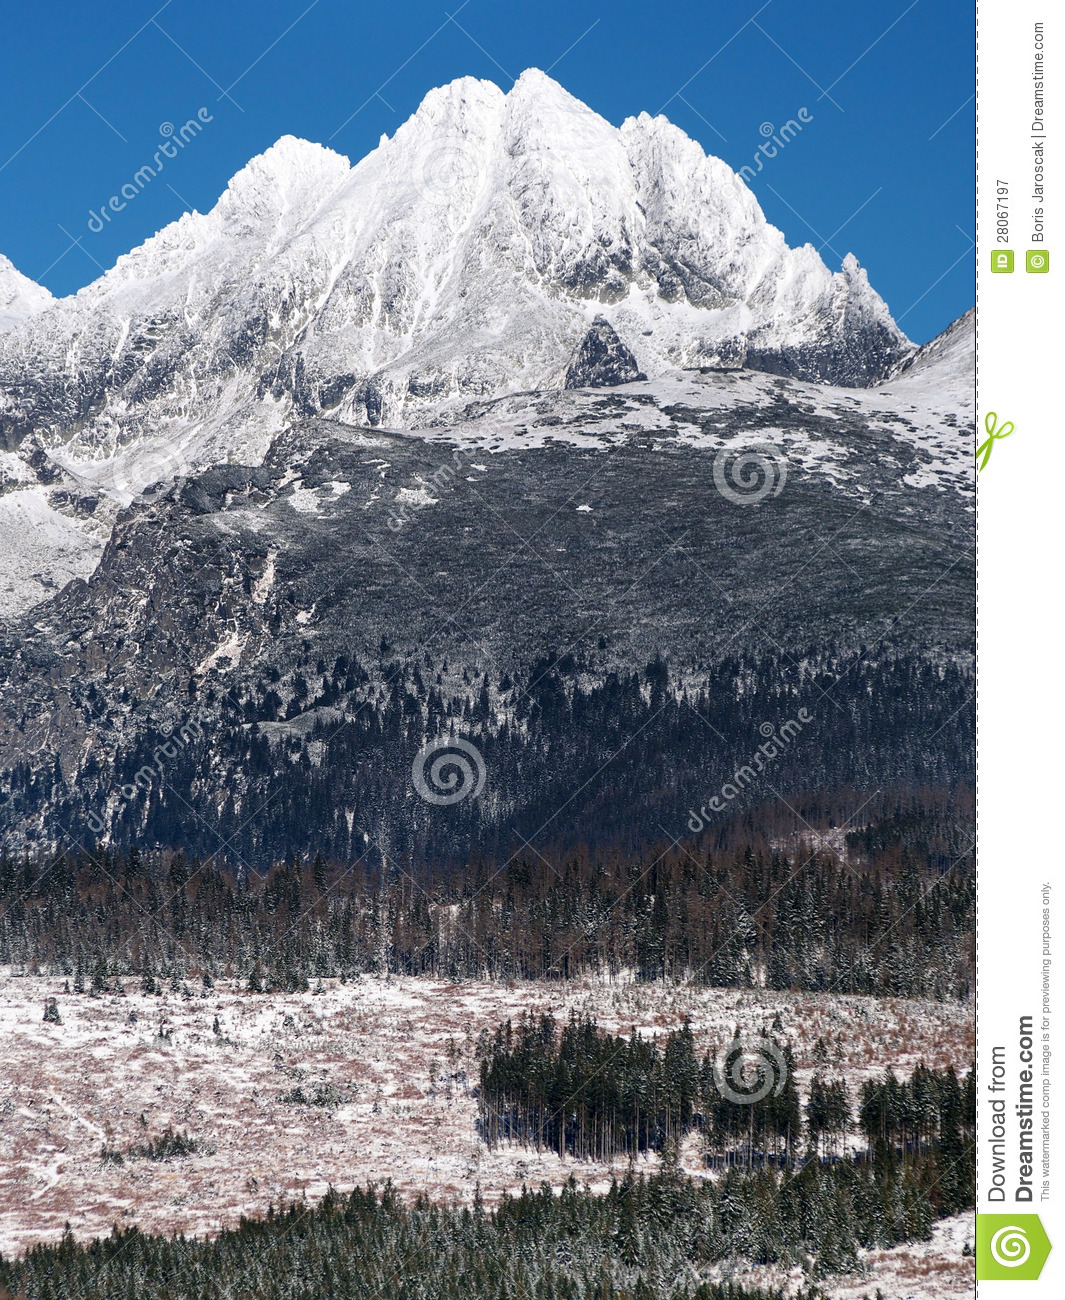 Peaks of High Tatras in winter